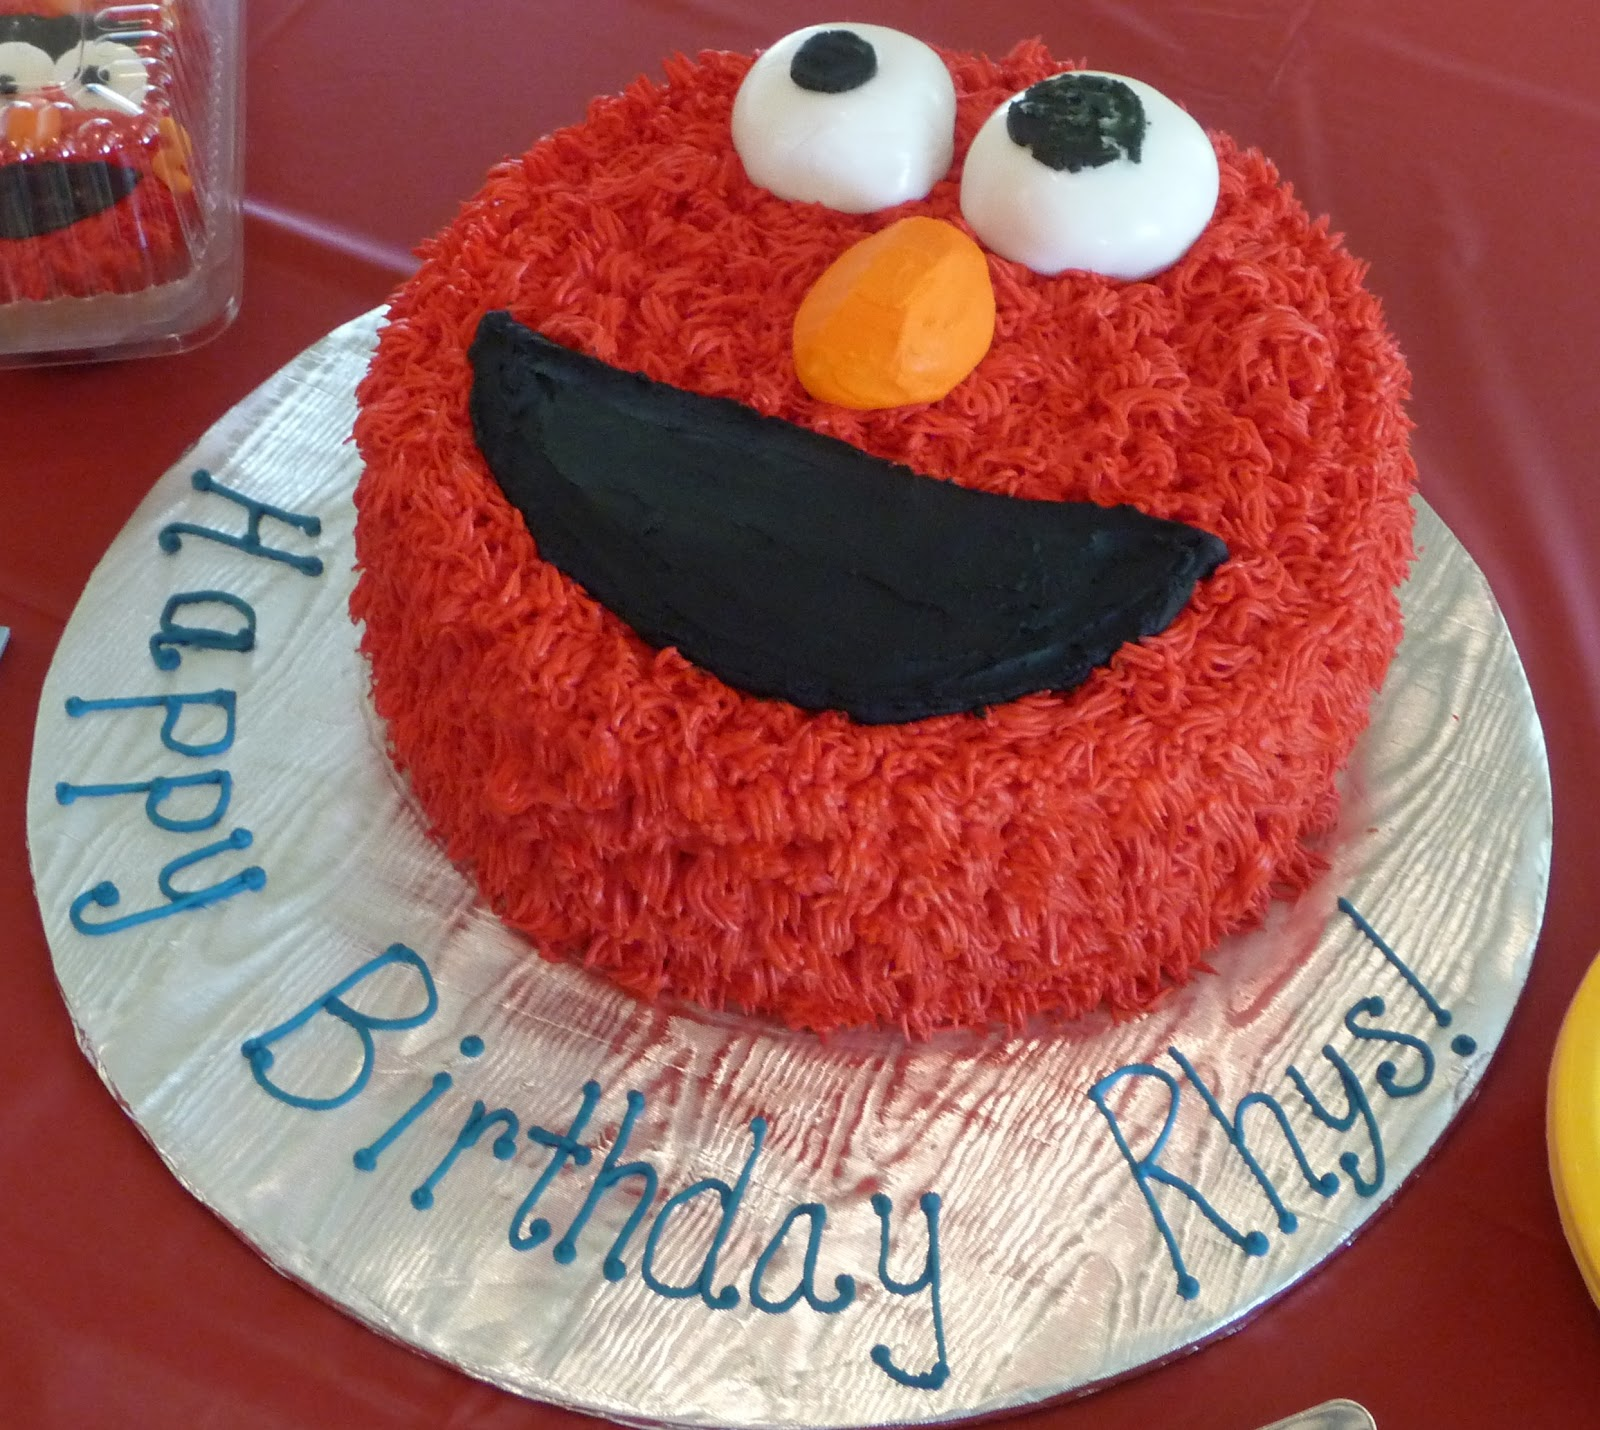 Cakewalk Elmo Cake by Sweet Ts Sweets